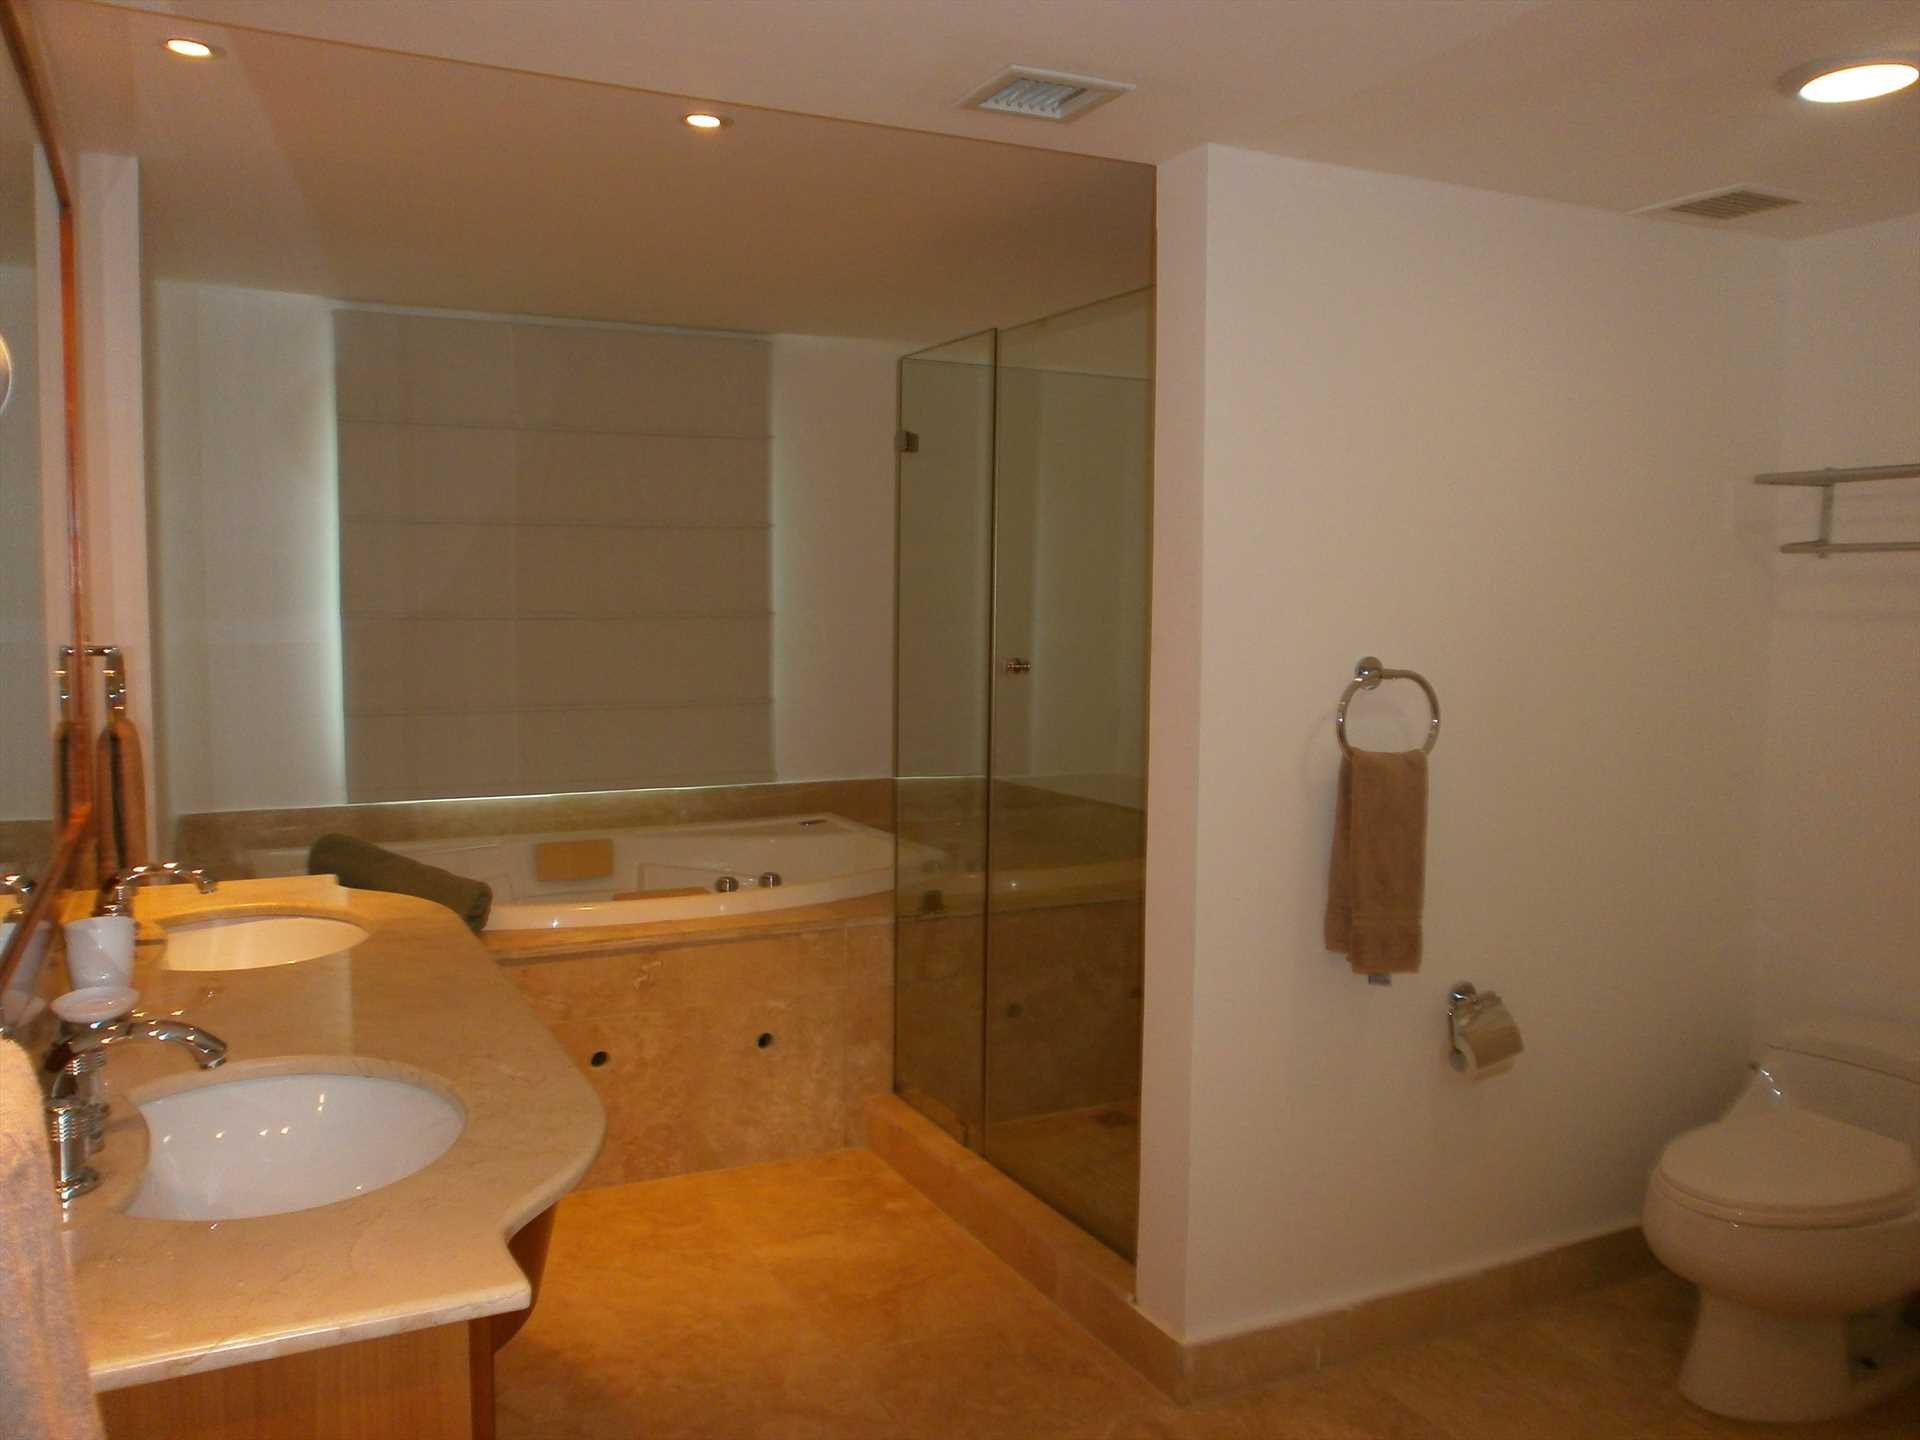 Spacious and modern full en-suite master bathroom with glass-enclosed shower and a private indoor spa/Jacuzzi.